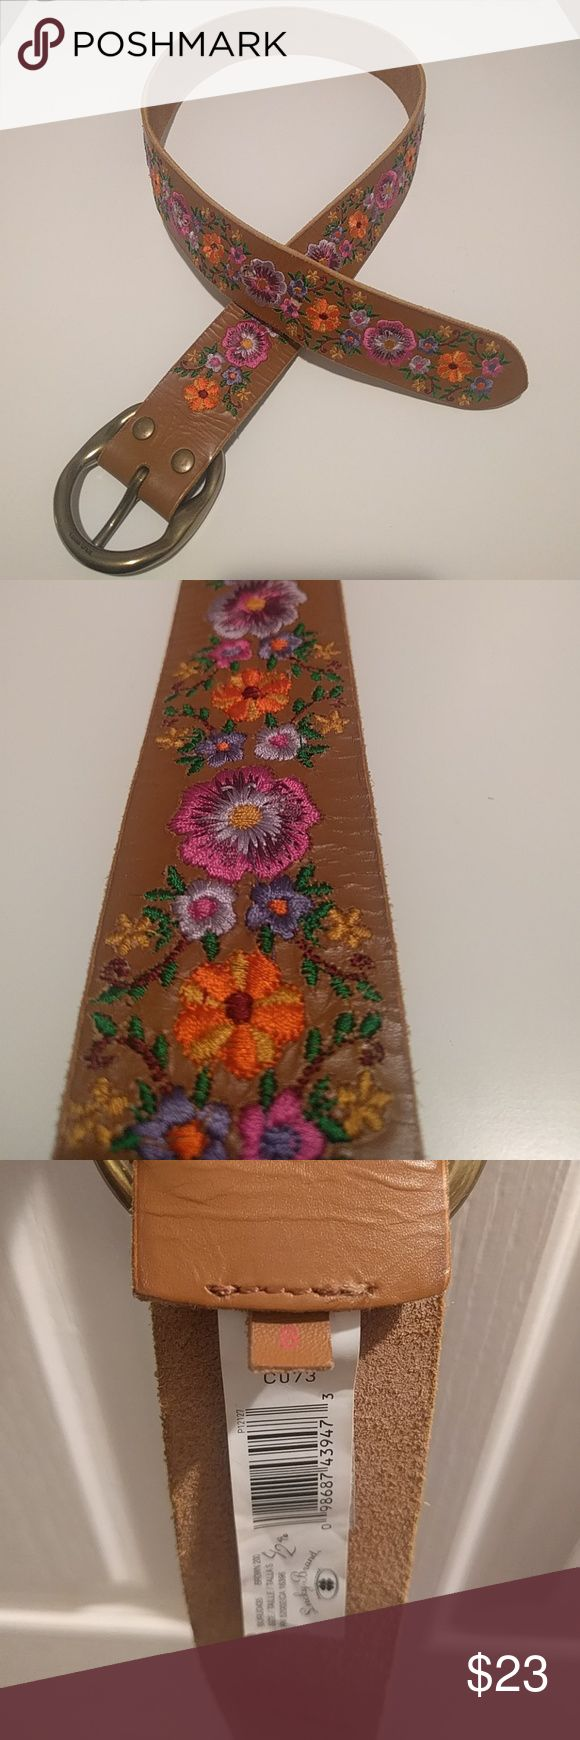 "Lucky Brand belt Leather belt with floral embroidery. 37"" long, size small. Lucky Brand Accessories Belts"